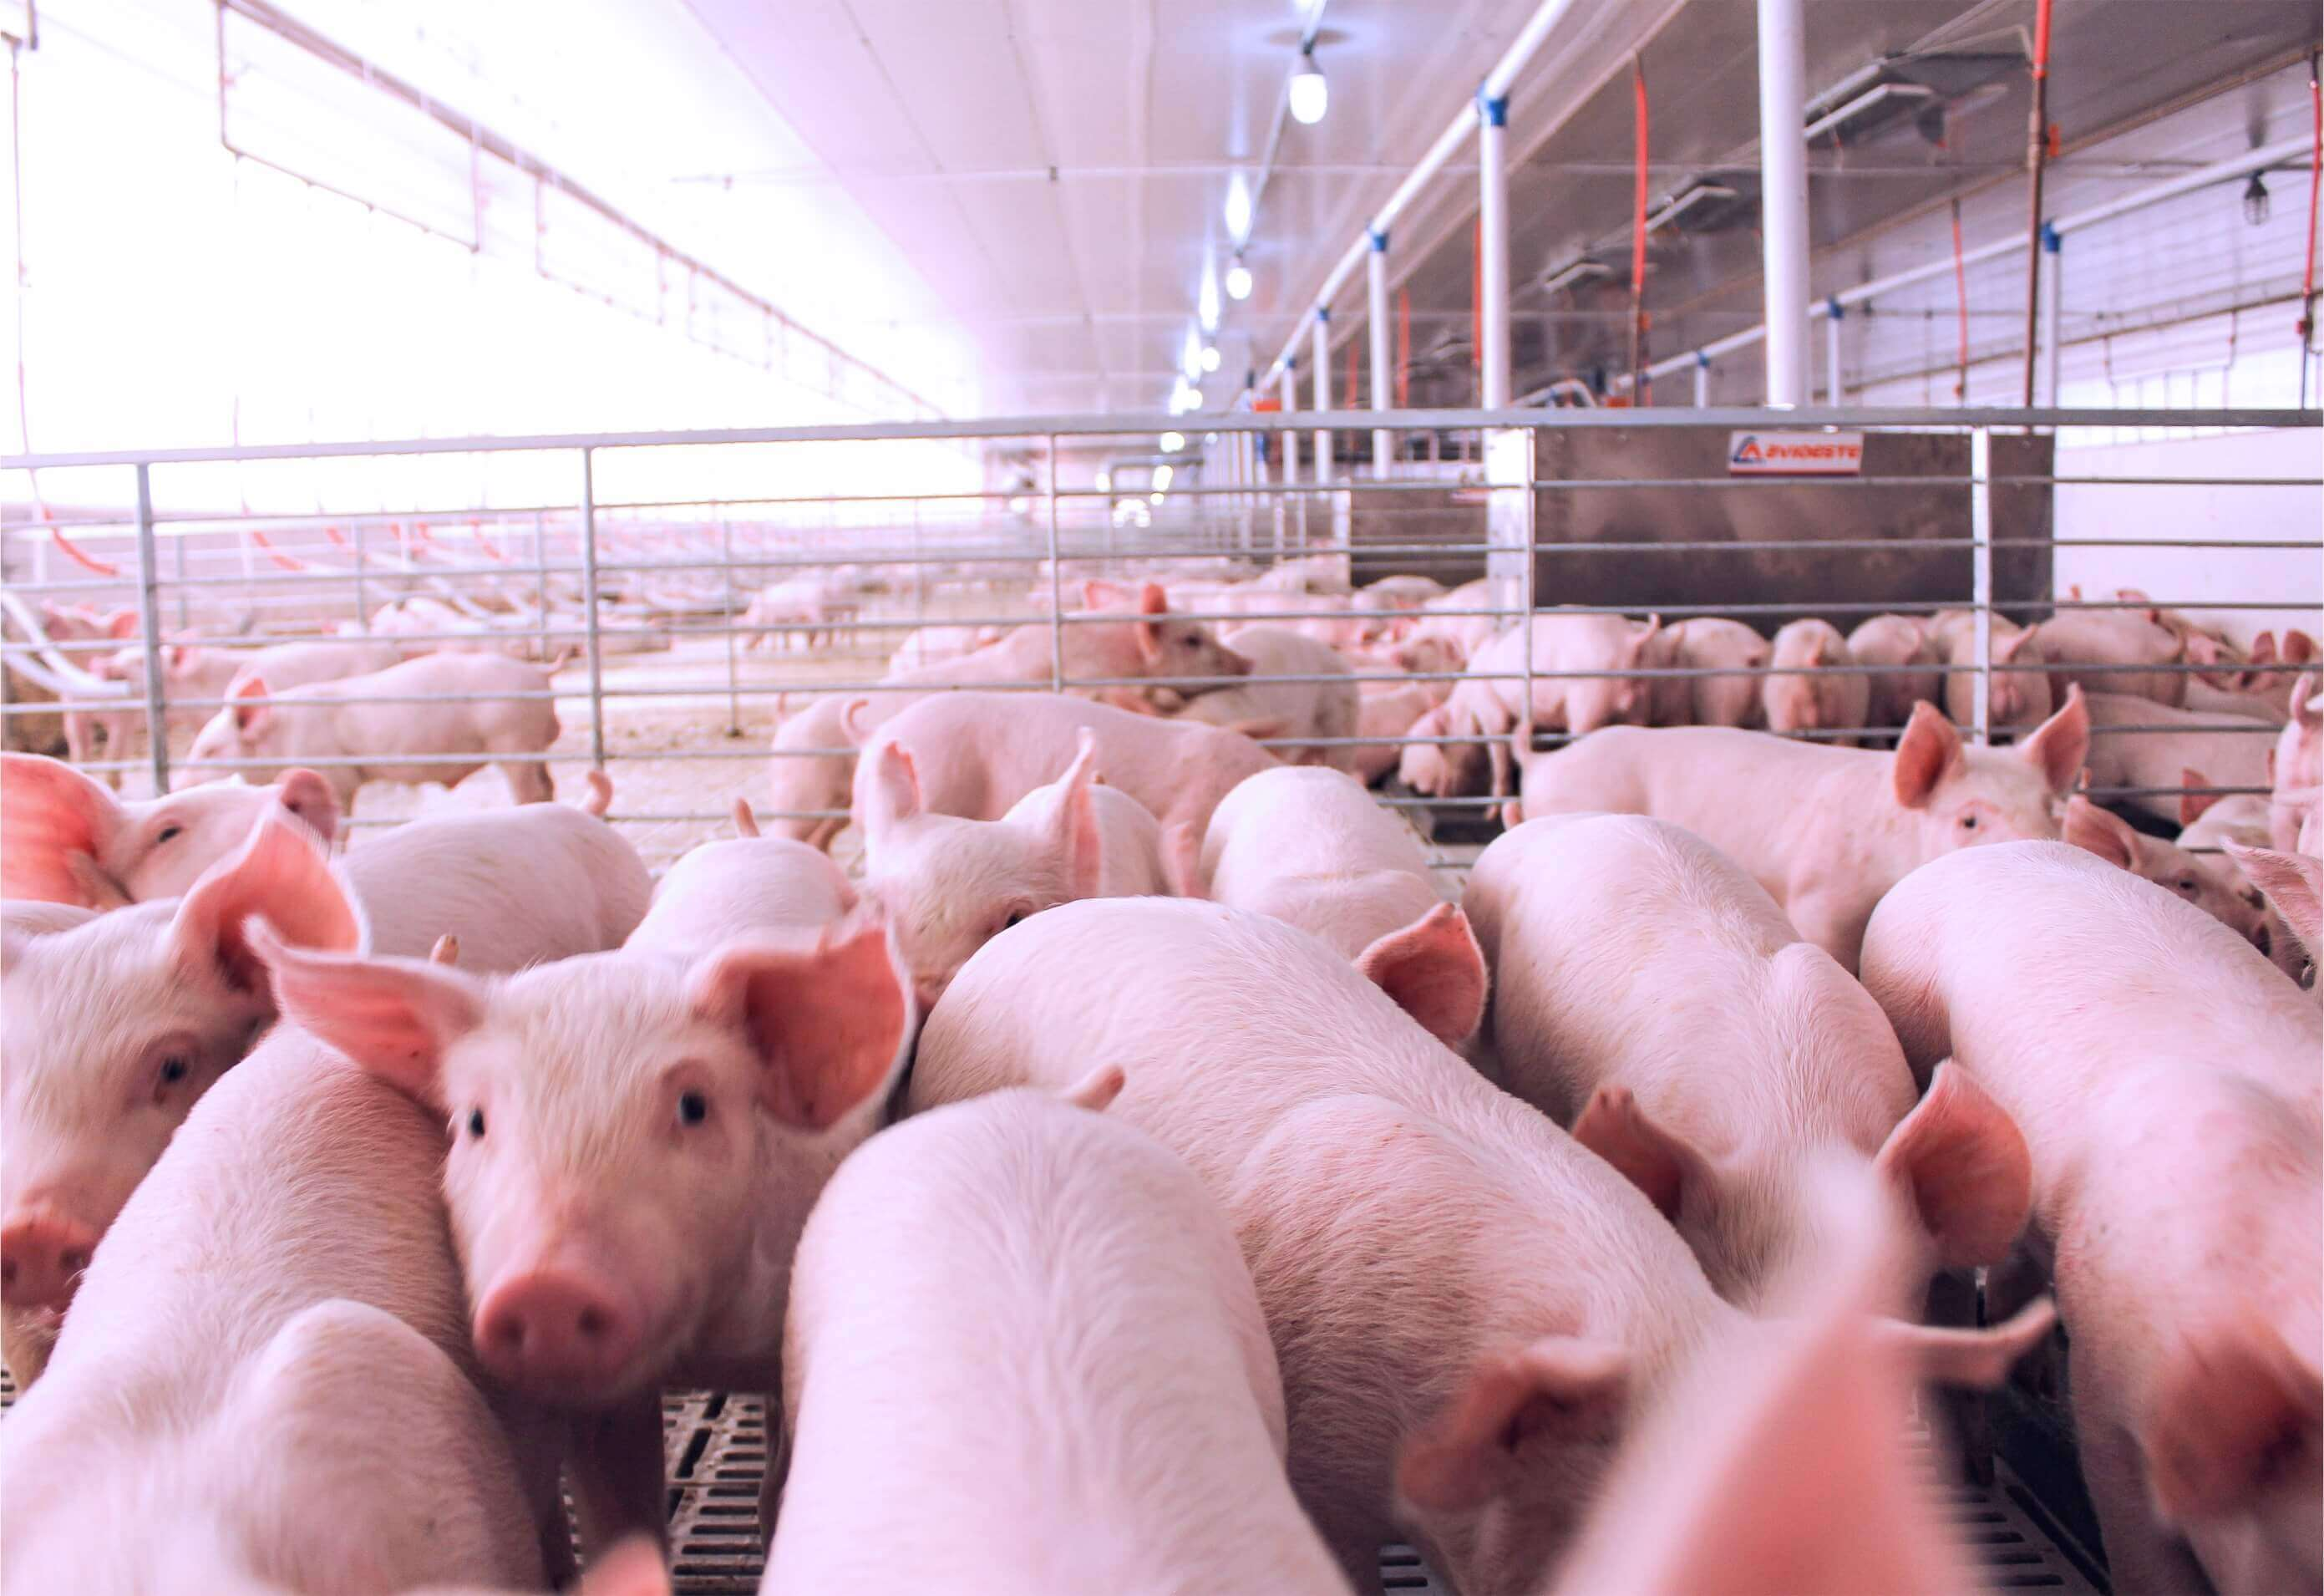 Capa Santa Catarina expands by 35% pork exports in 2020